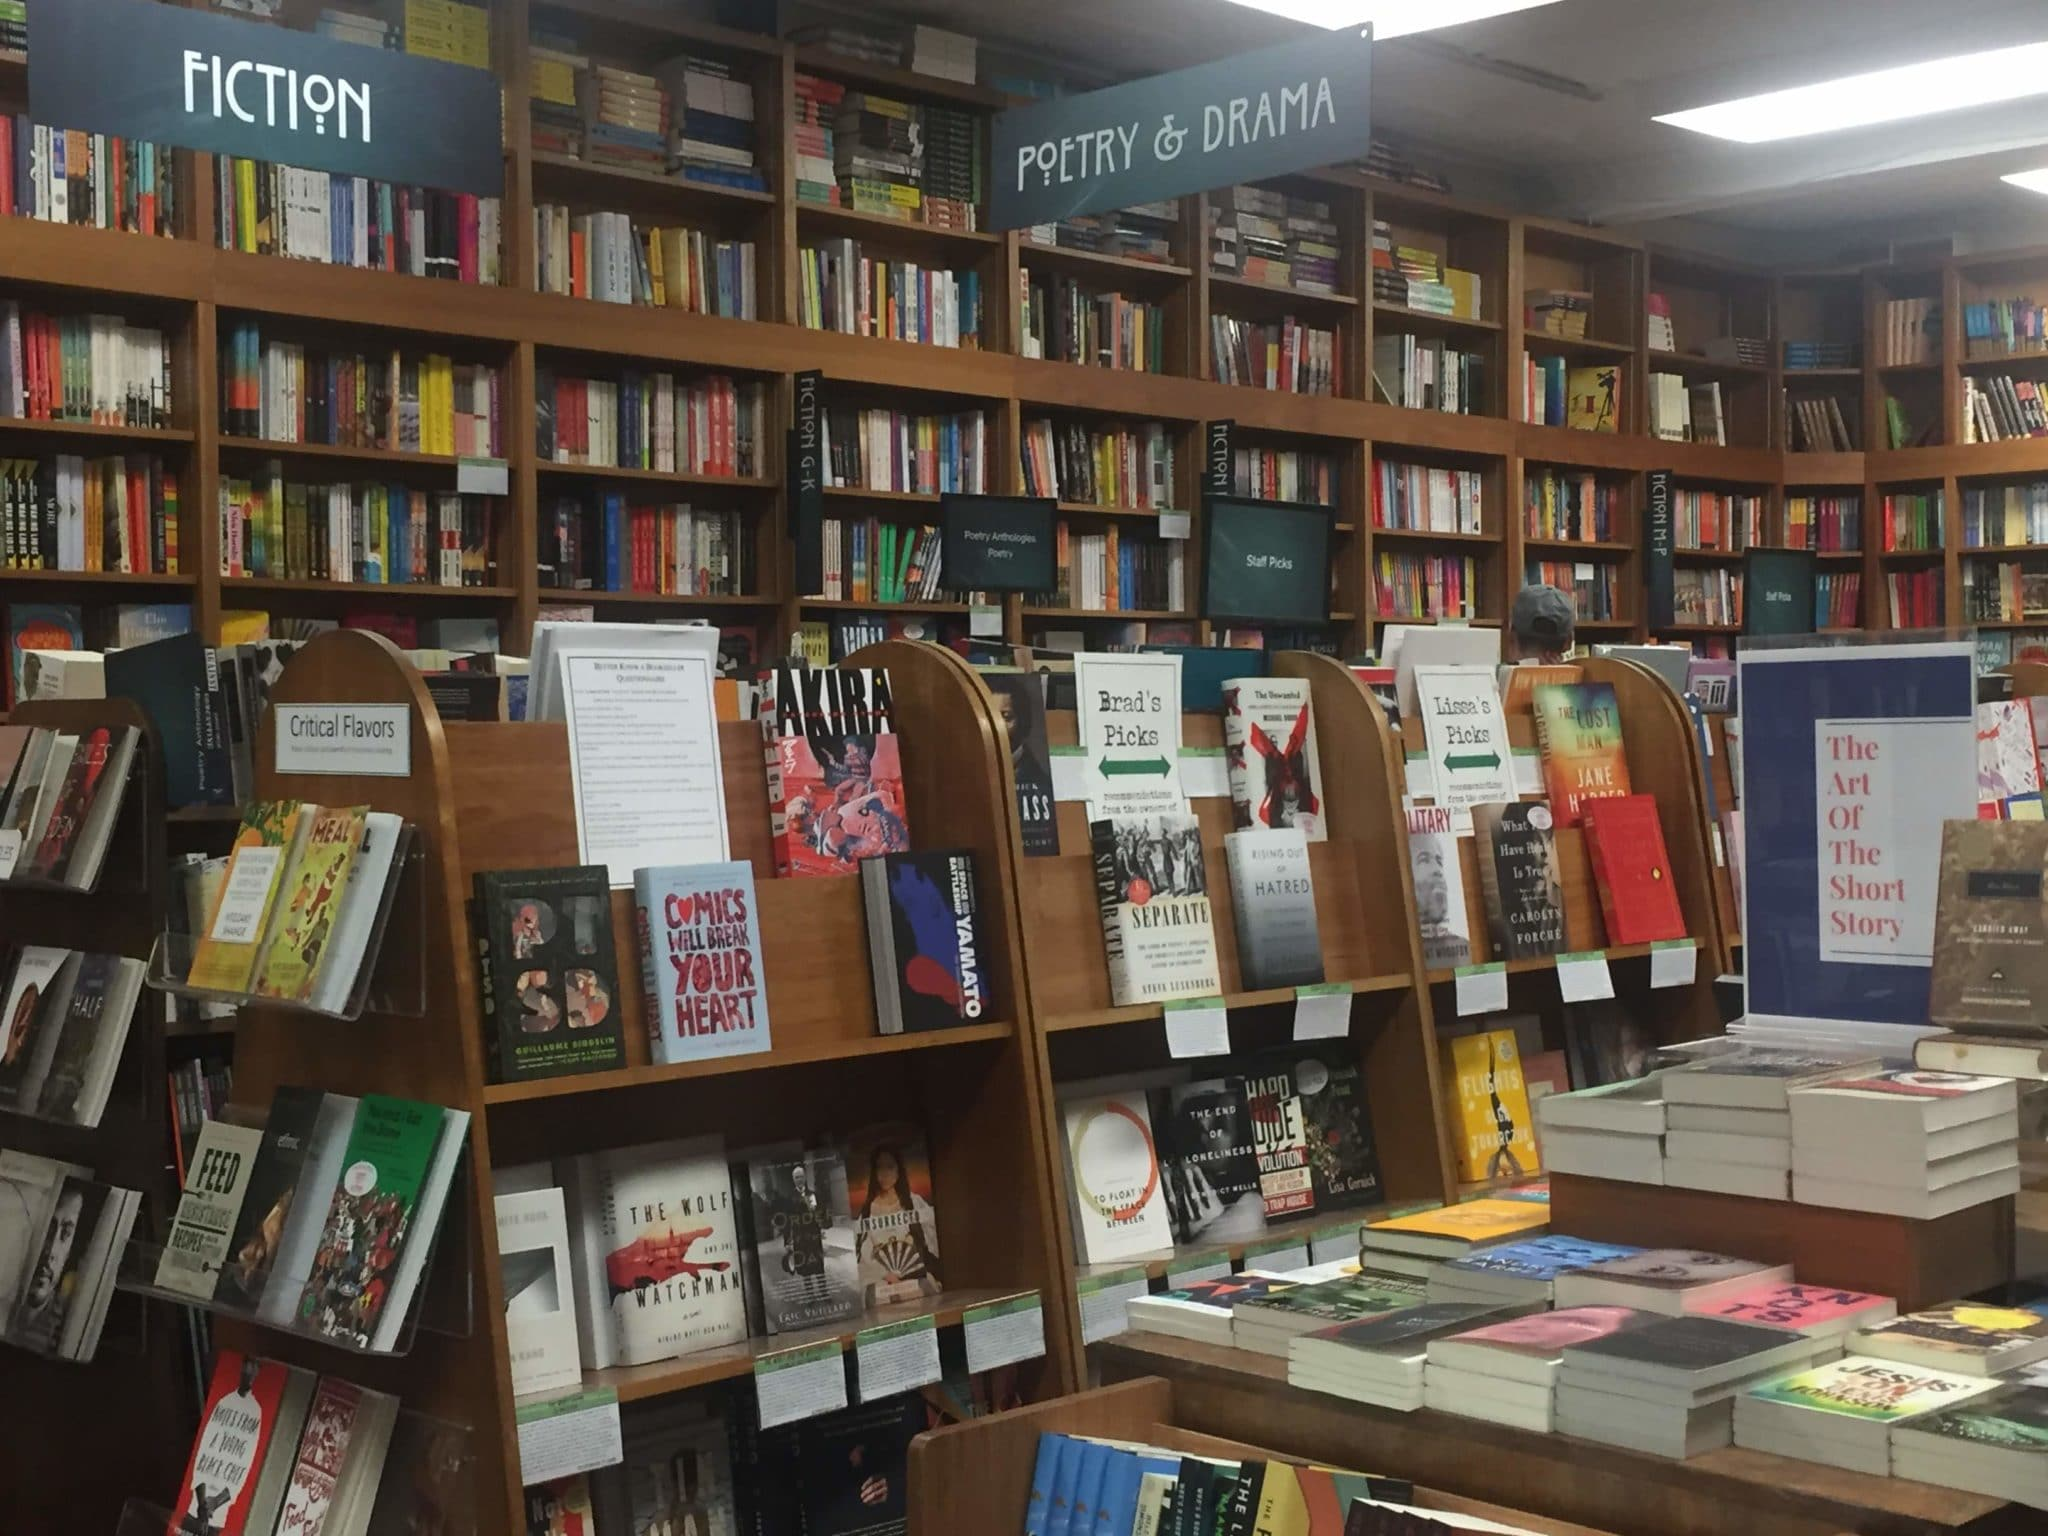 Poetry & Drama section of Politics and Prose